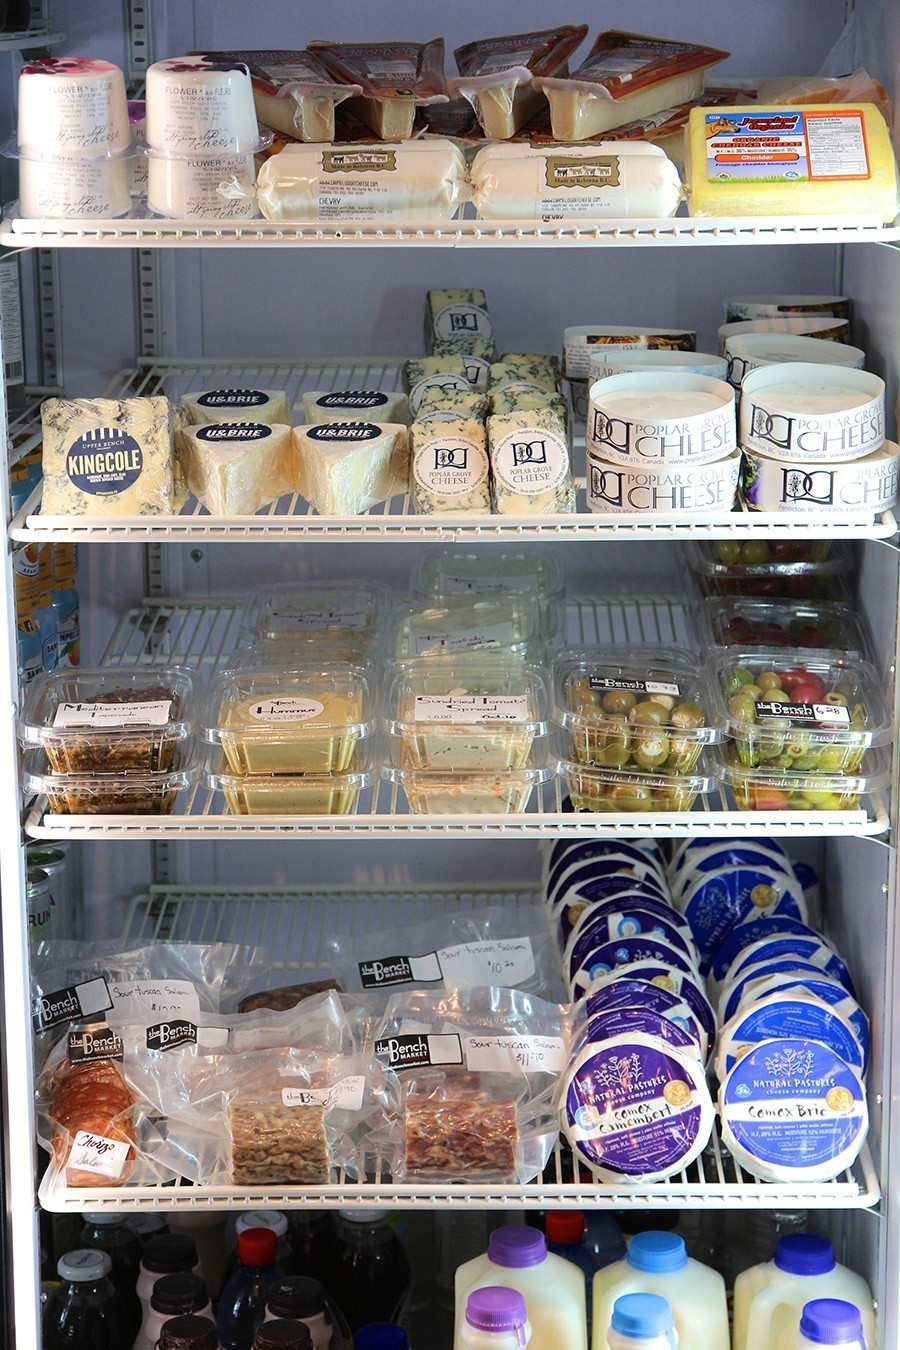 Cheese, Charcuterie & Dips retail fridge - The Bench Market, Penticton BC